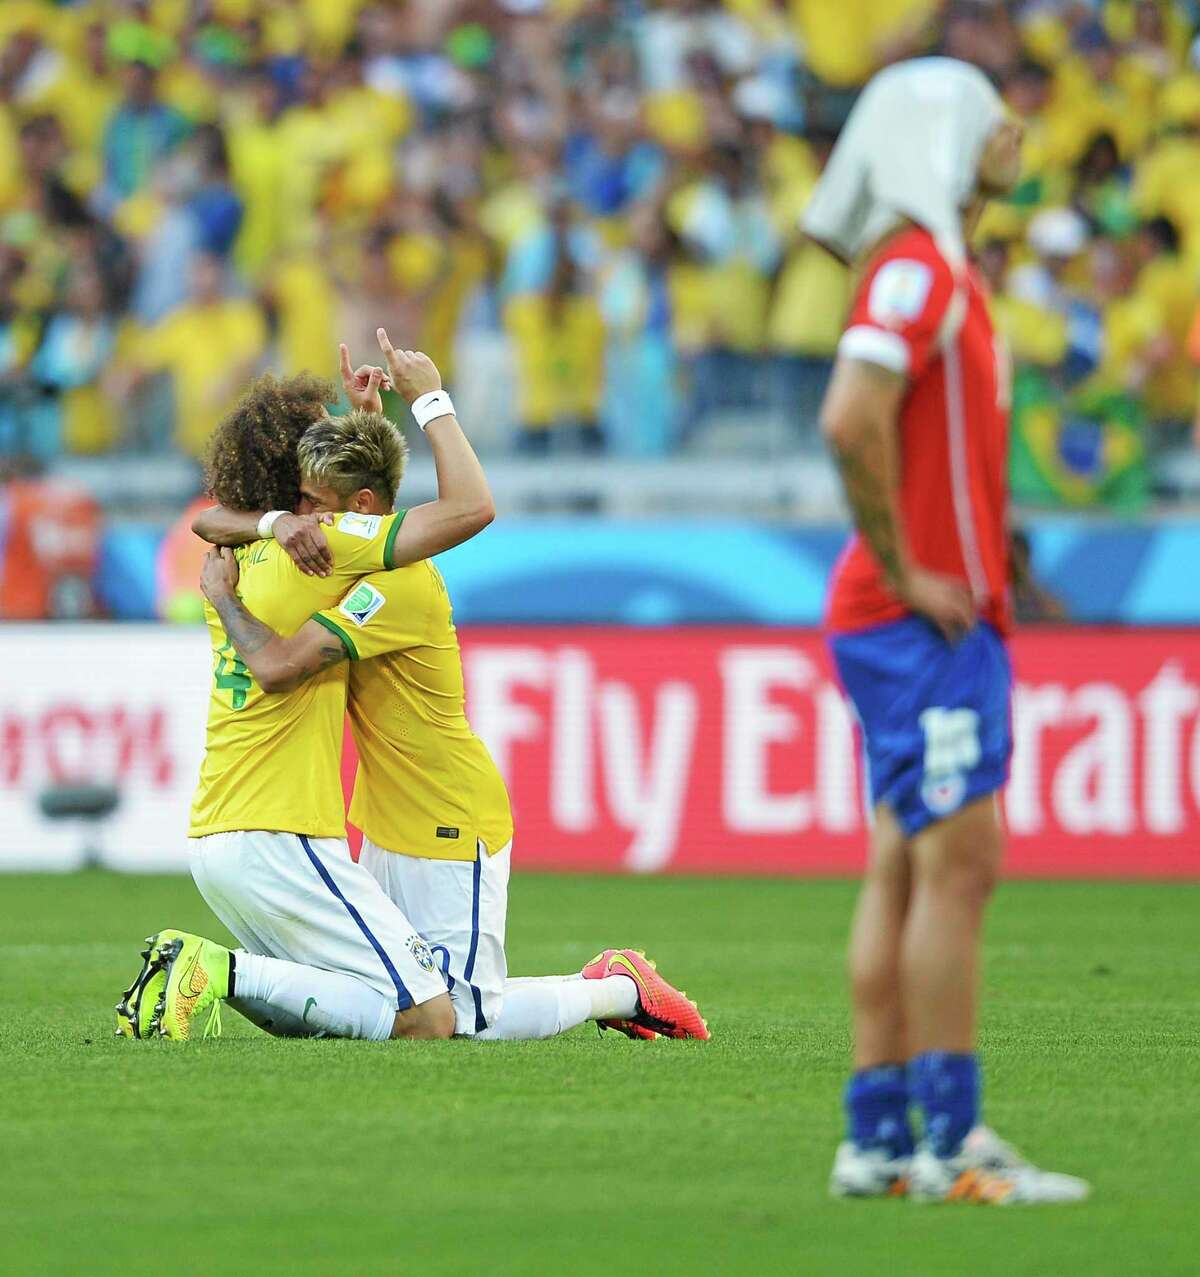 Brazil's David Luiz, left, and Neymar hug after a penalty shootout following regulation time during the World Cup Round of 16 match against Chile Saturday at the Mineirao Stadium in Belo Horizonte, Brazil.